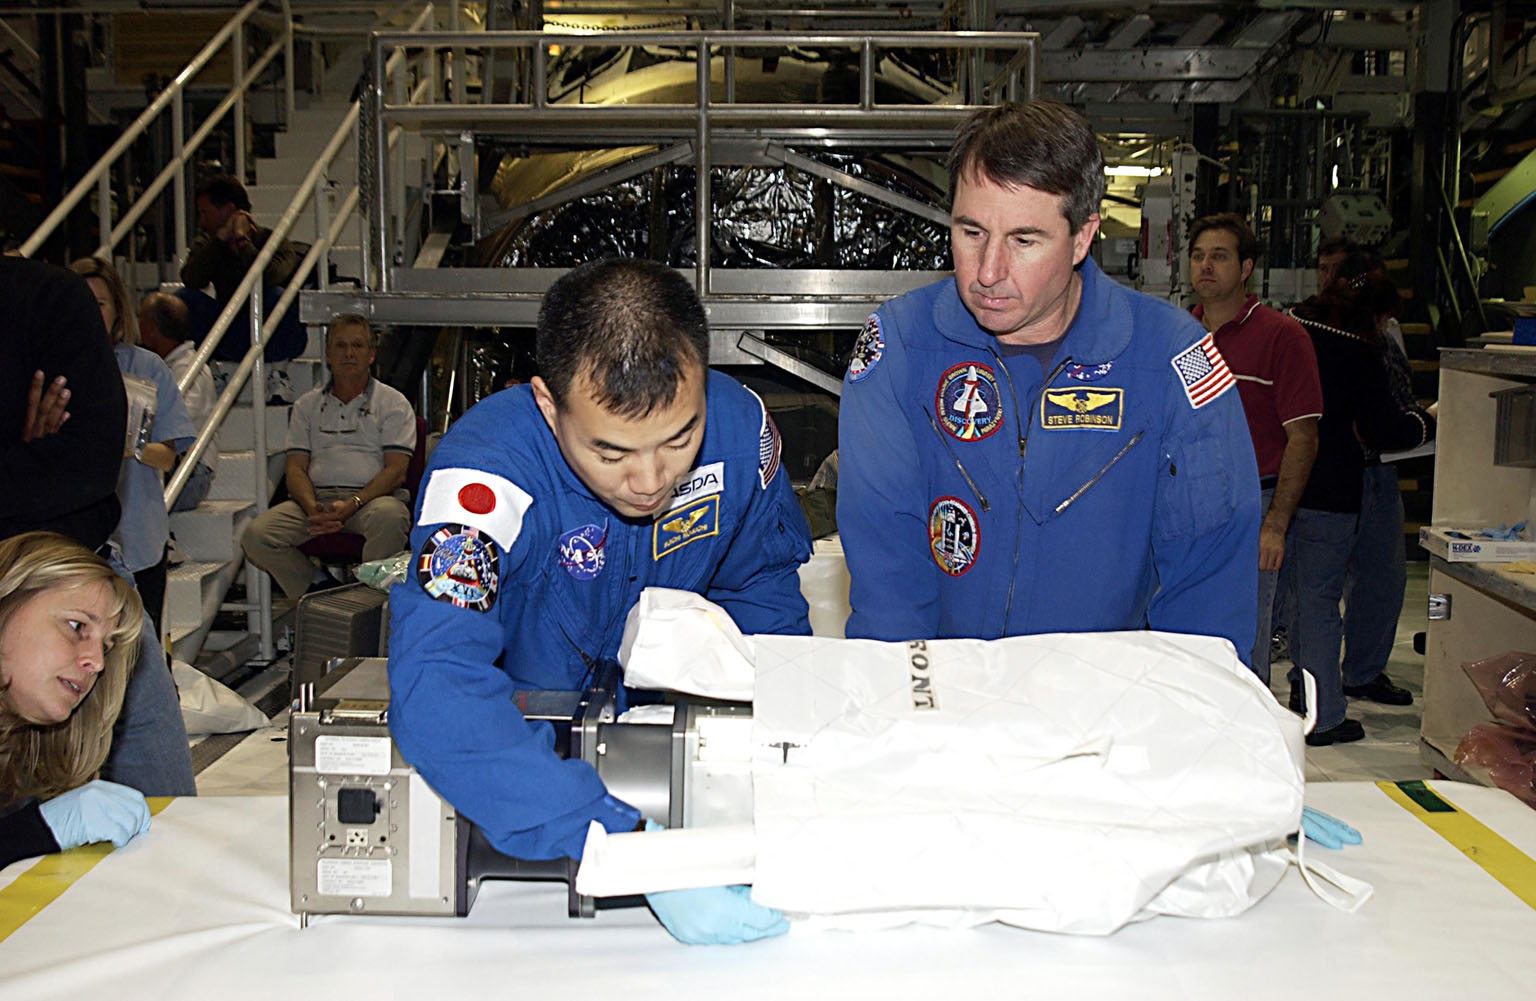 KENNEDY SPACE CENTER, FLA. -- STS-114 Mission Specialist Soichi Noguchi, with the National Space Development Agency of Japan (NASDA), works with equipment as Mission Specialist Stephen K. Robinson, Ph.D., (right) watches. The STS-114 crew is participating in familiarization activities with the hardware that will fly on the mission. STS-114 is a utilization and logistics flight (ULF-1) that will carry Multi-Purpose Logistics Module Raffaello and the External Stowage Platform (ESP-2), as well as the Expedition 7 crew, to the International Space Station. Launch is targeted for March 1, 2003.